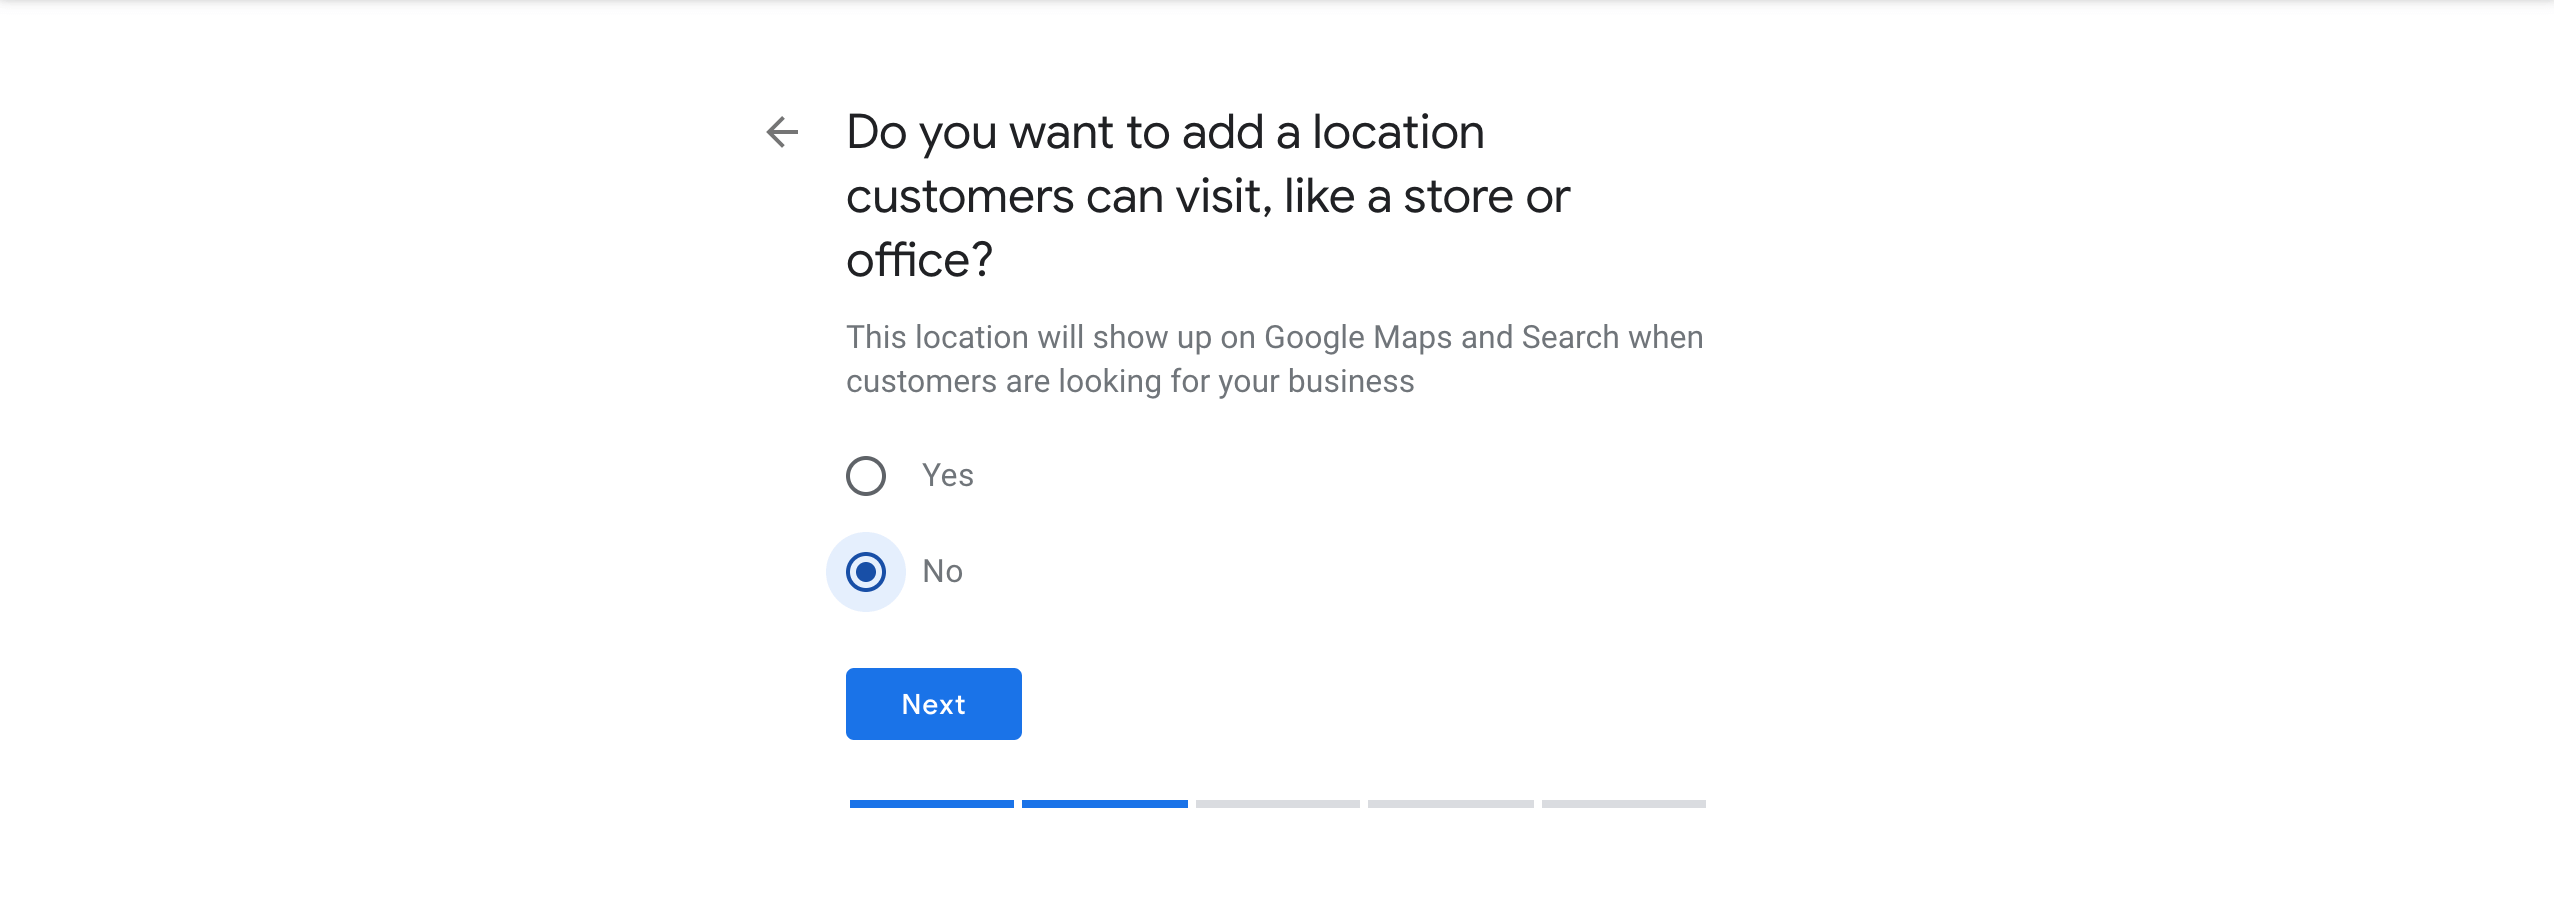 Not setting a physical location or address for a new Google Listing.